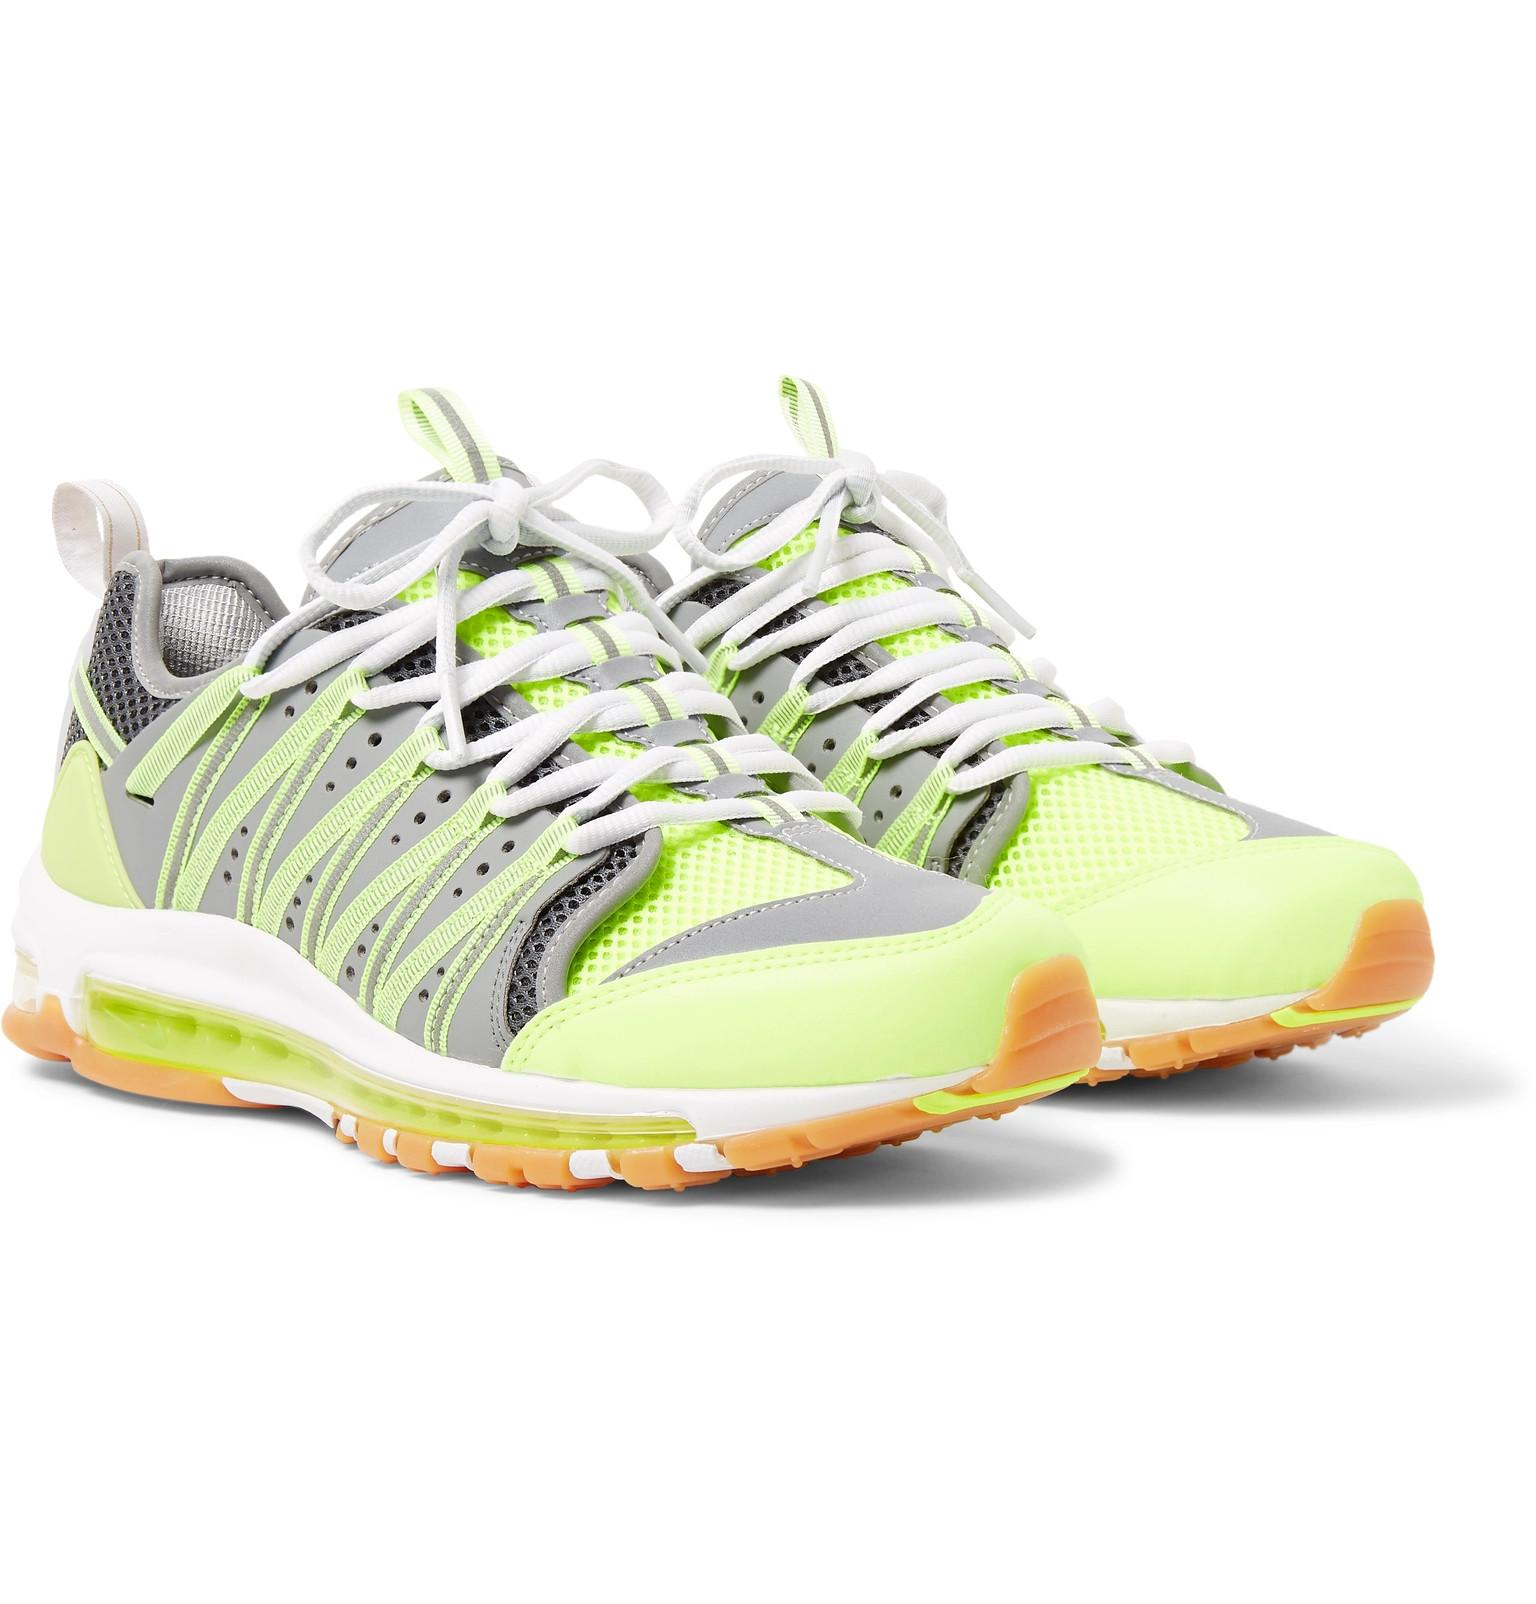 07973424 Lyst - Nike + Clot Zoom Haven 97 Leather And Mesh Sneakers for Men